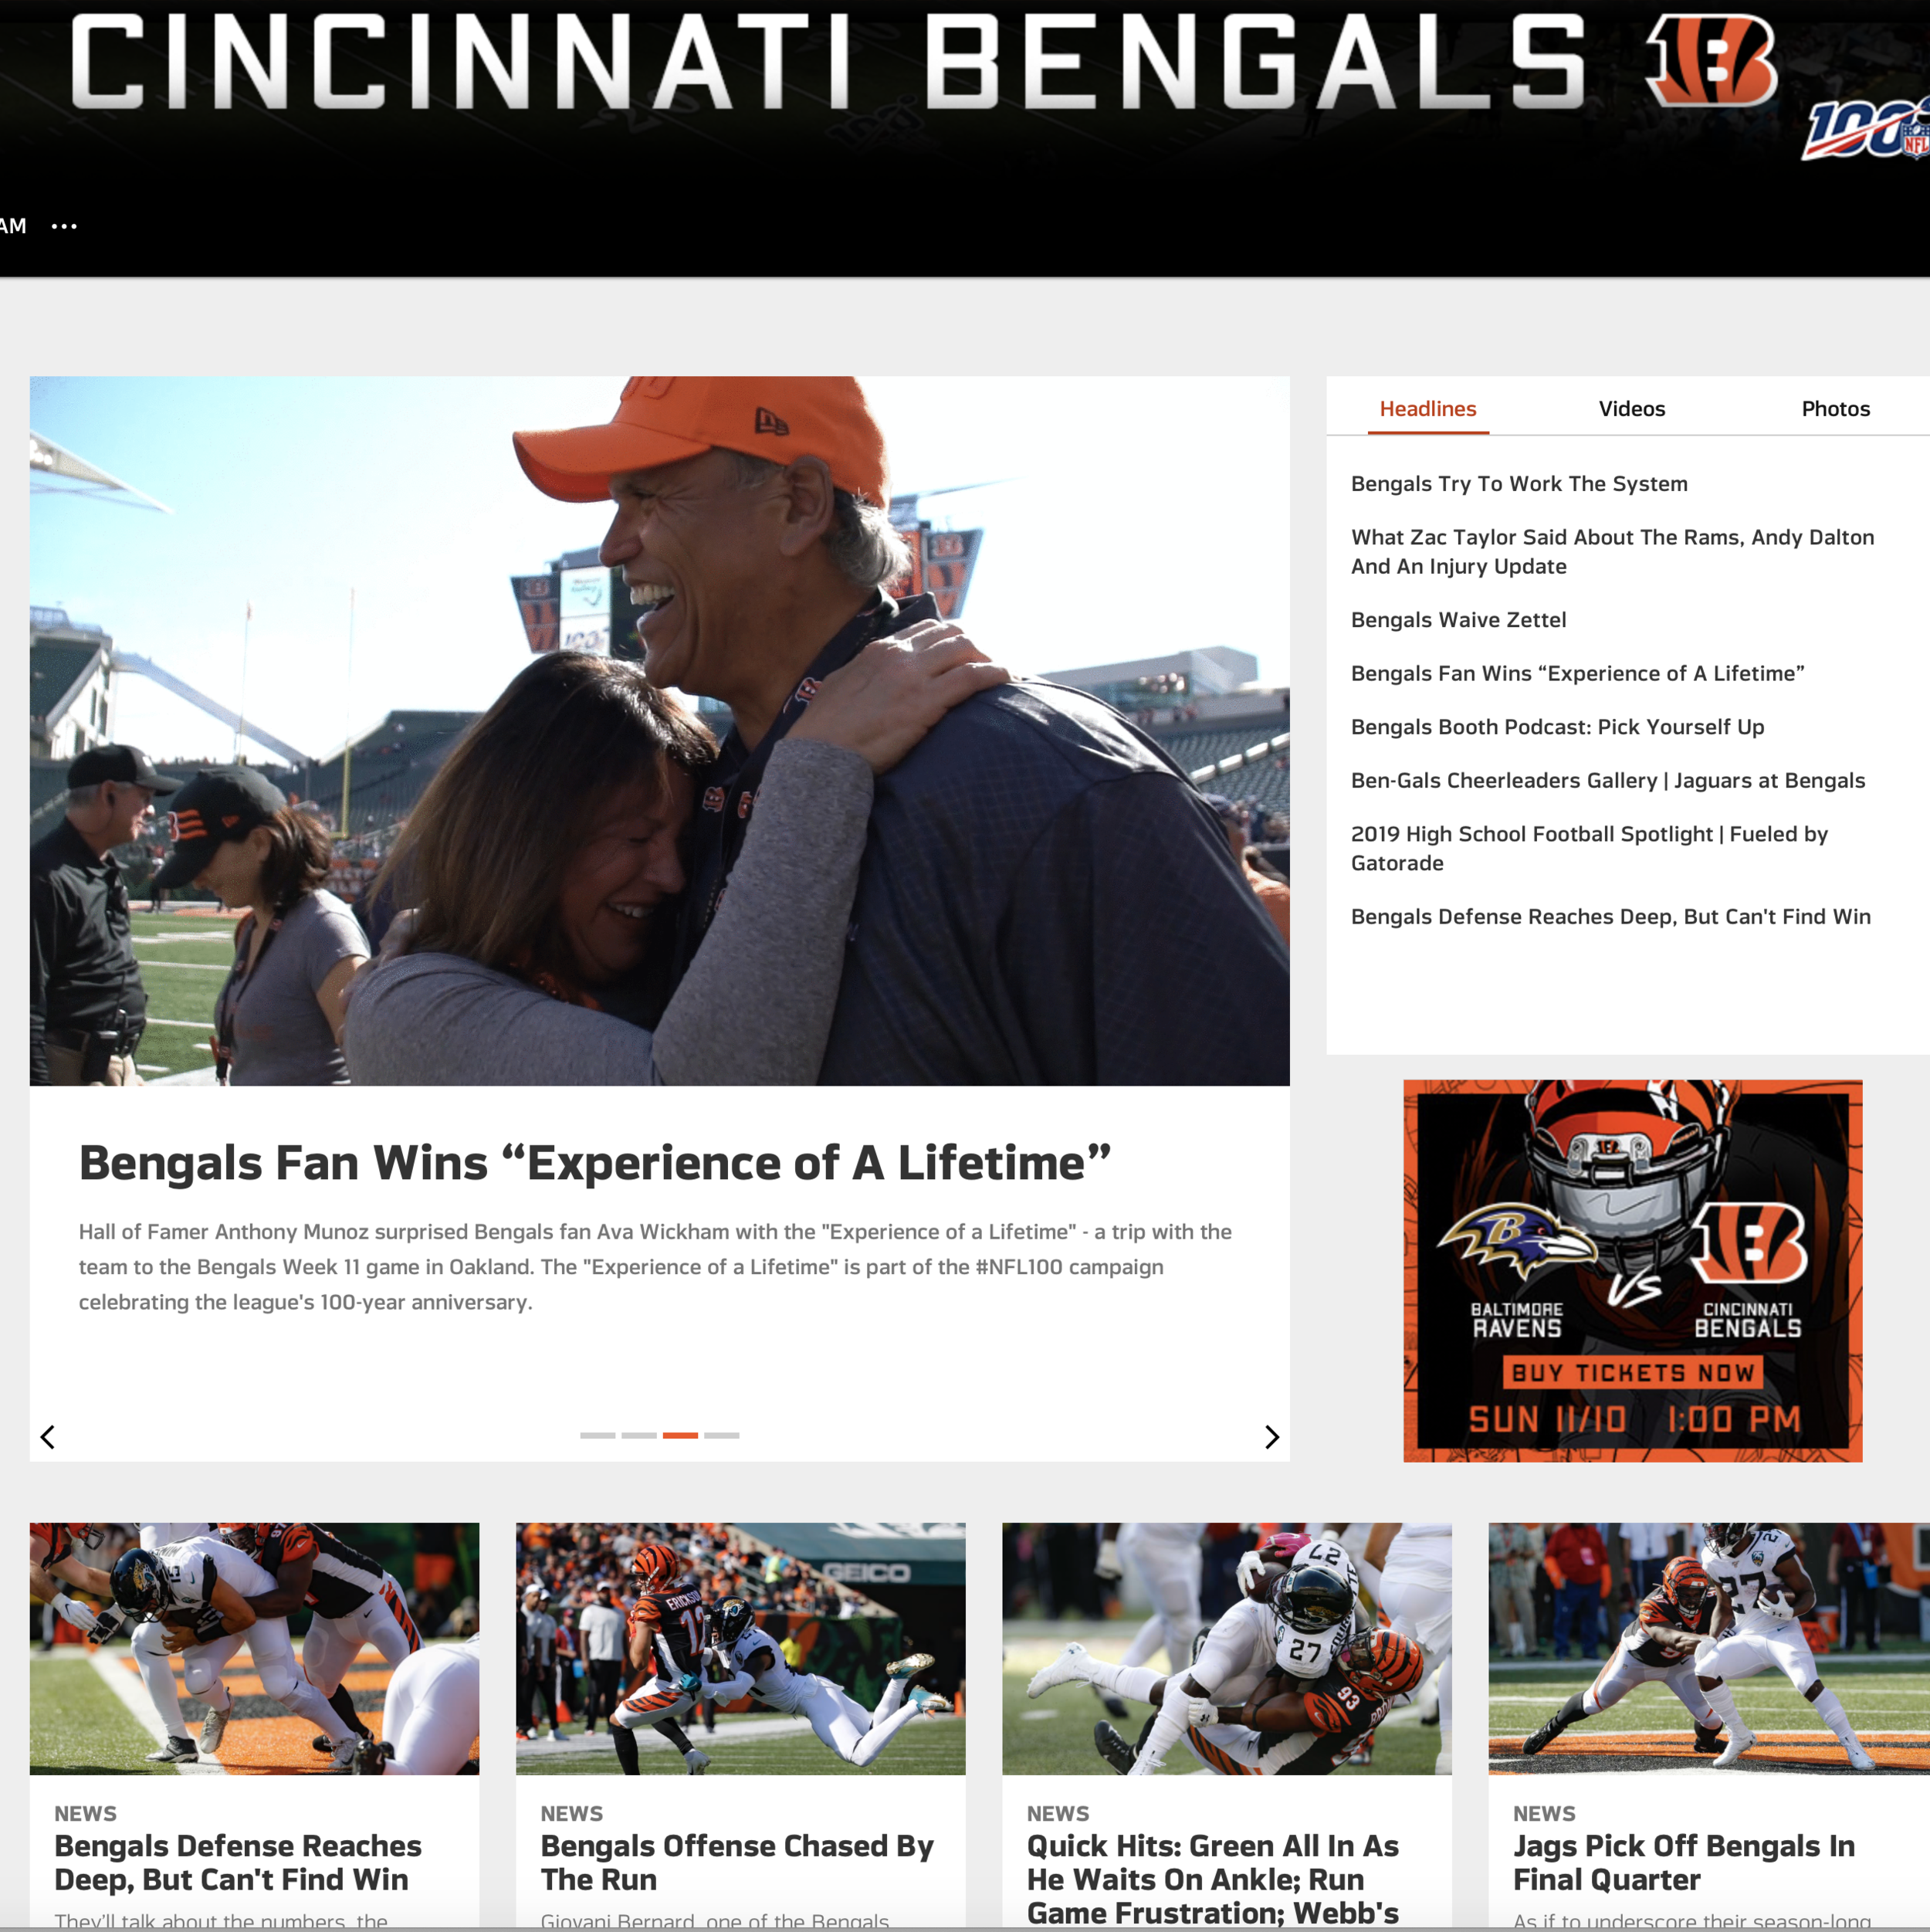 The trend of sports organizations hiring professional sports journalists started in earnest in about 2000 when the Cincinnati Bengals hired a newspaper beat writer who had been covering the team to write for the team's website, according to researcher Michael Mirer.